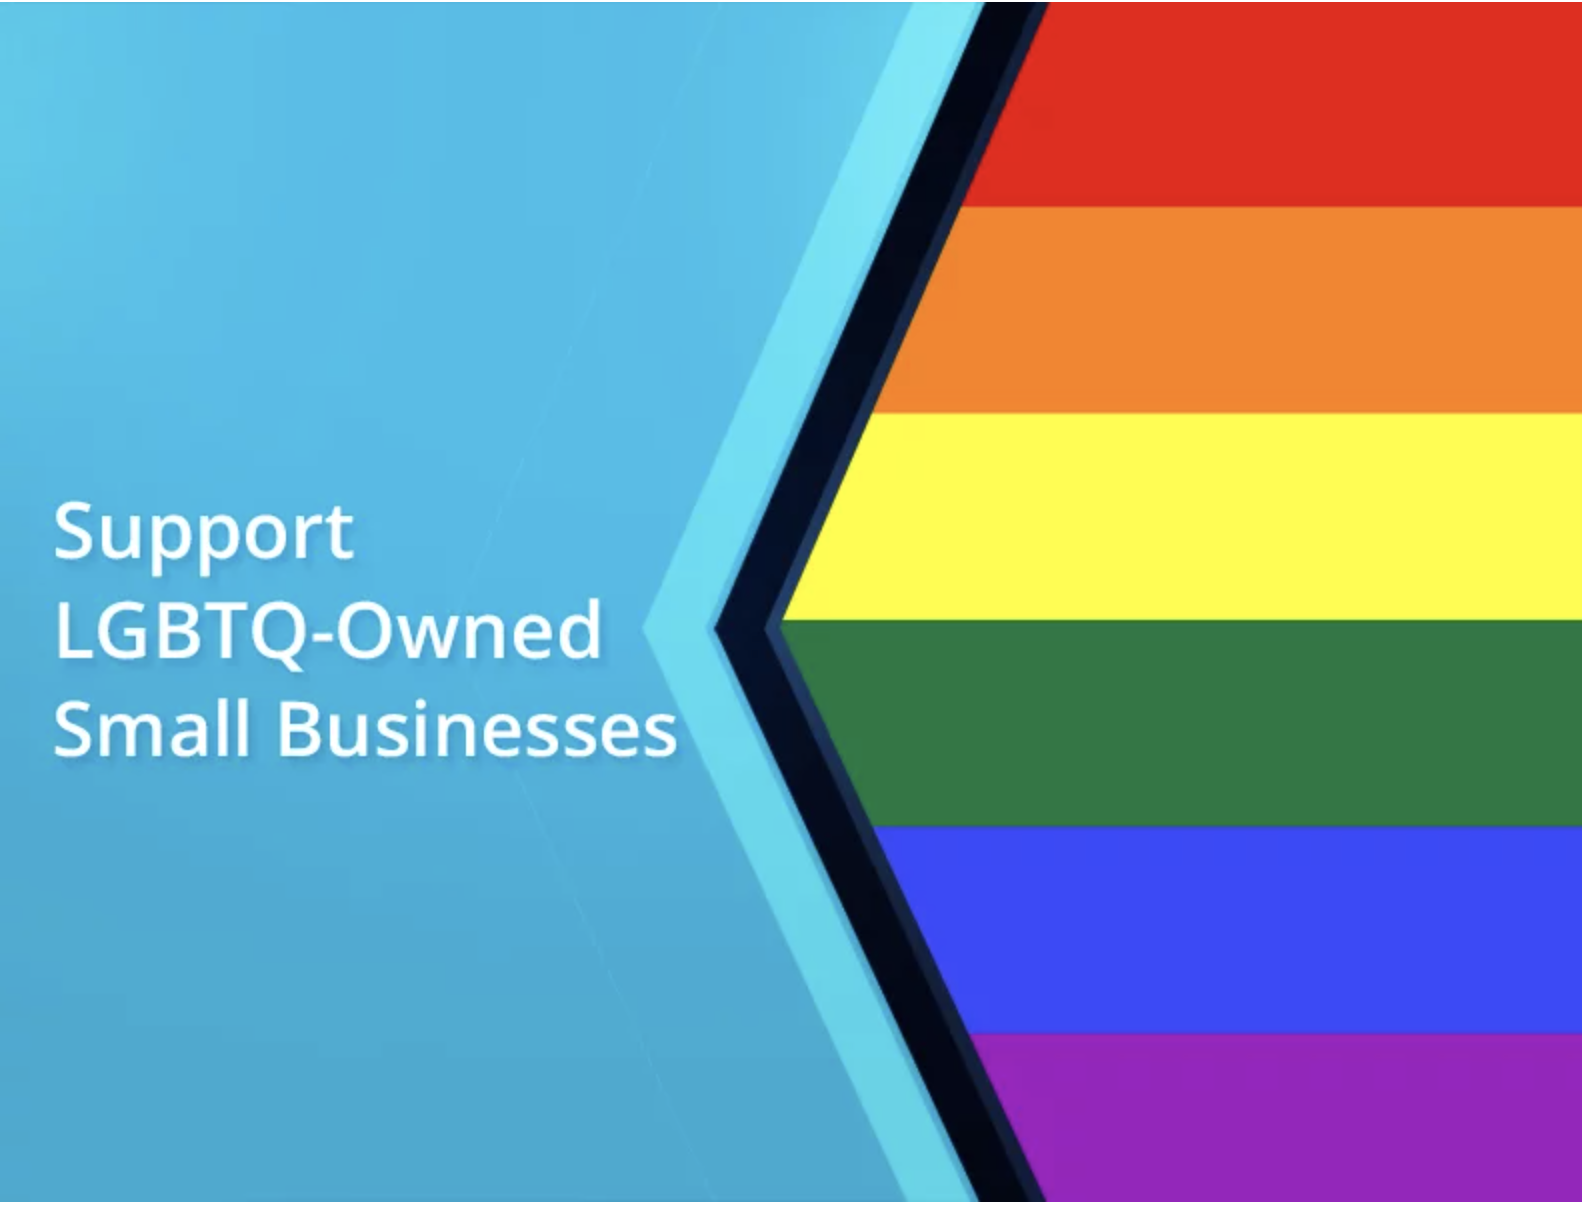 #LGBTQ: How to Support LGBTQ-Owned Small Businesses & Resources By Sarah Davis | Updated on July 19, 2020